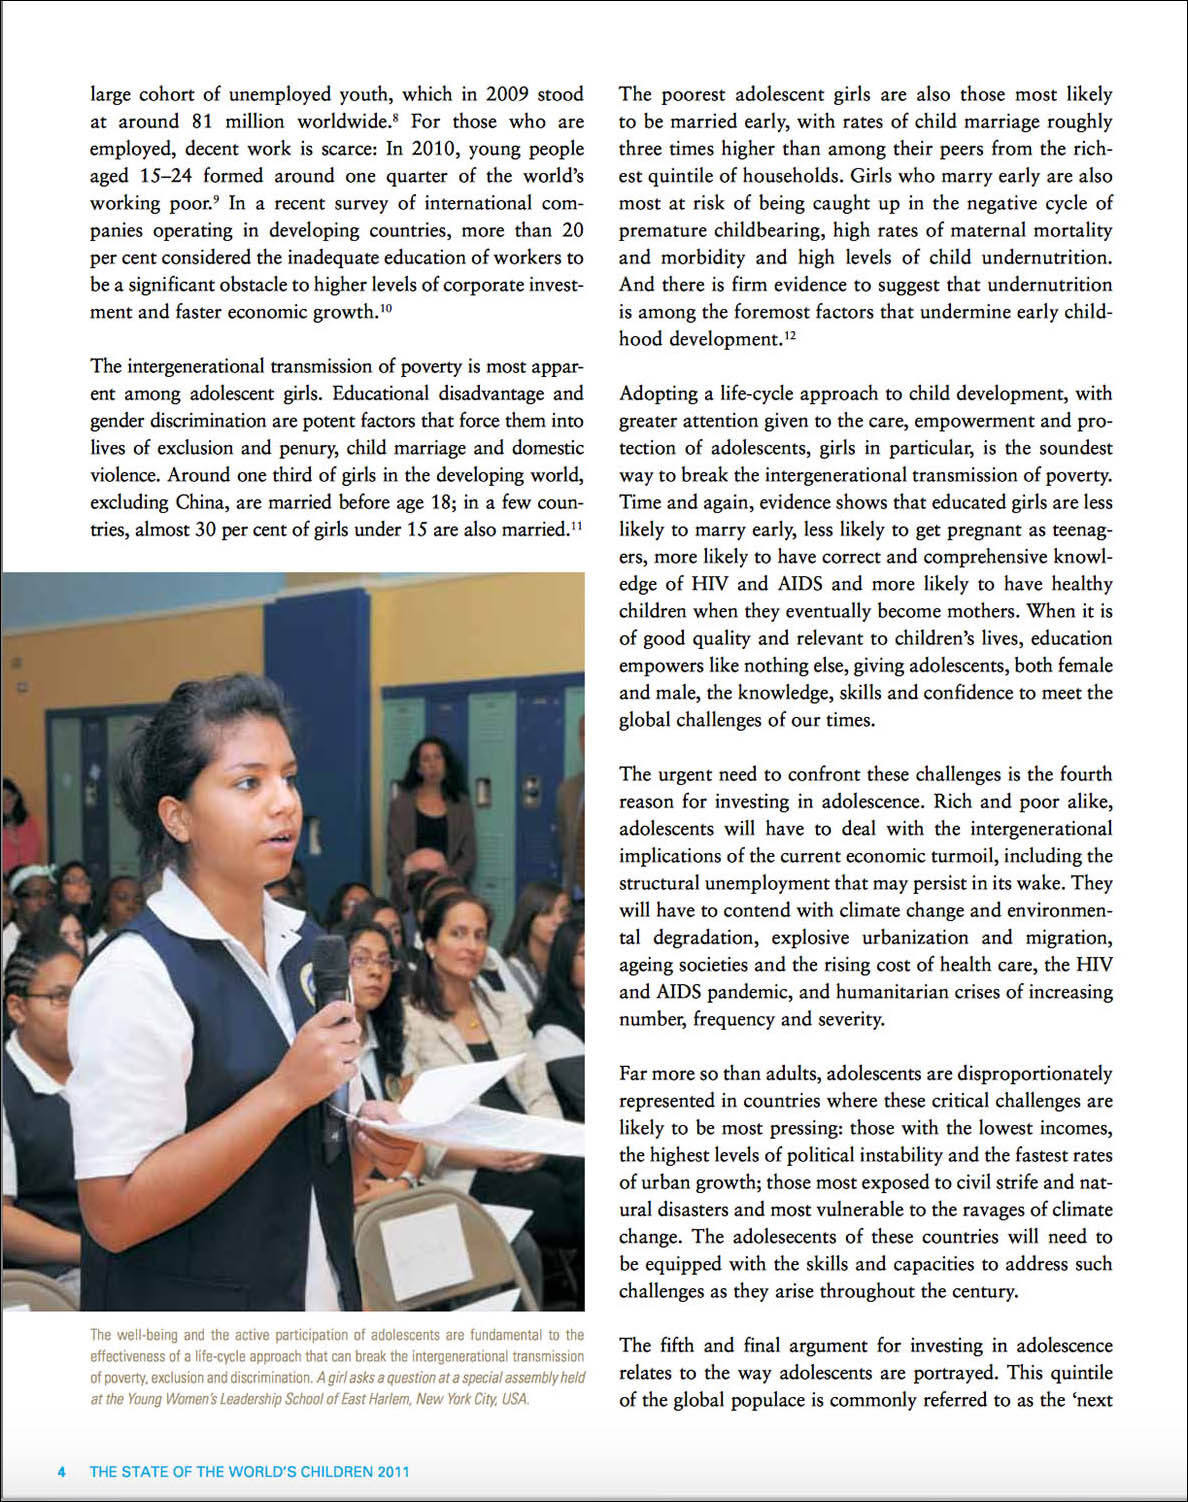 Screen capture of a page from a report showing a girl speaking from a microphone at a Harlem, NY school.